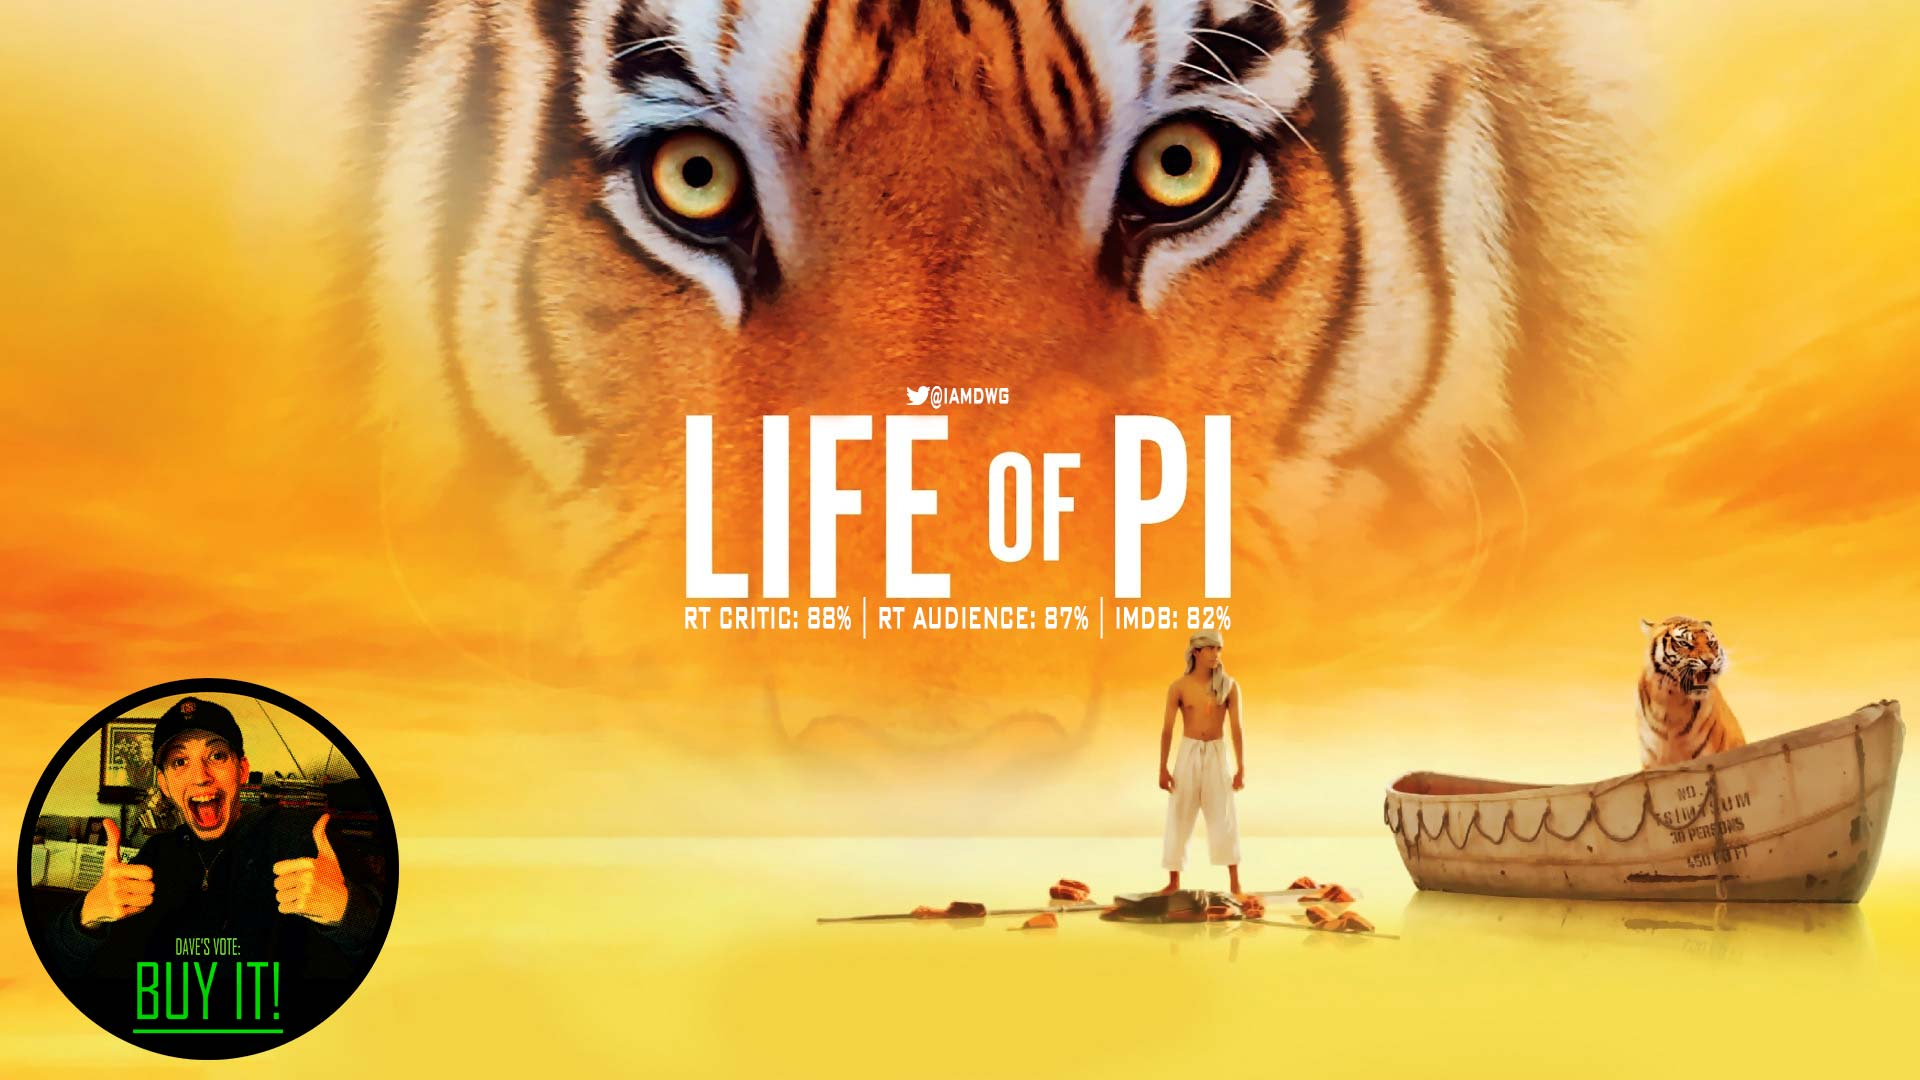 Life of pi 2012 dave examines movies for Life of pi character development